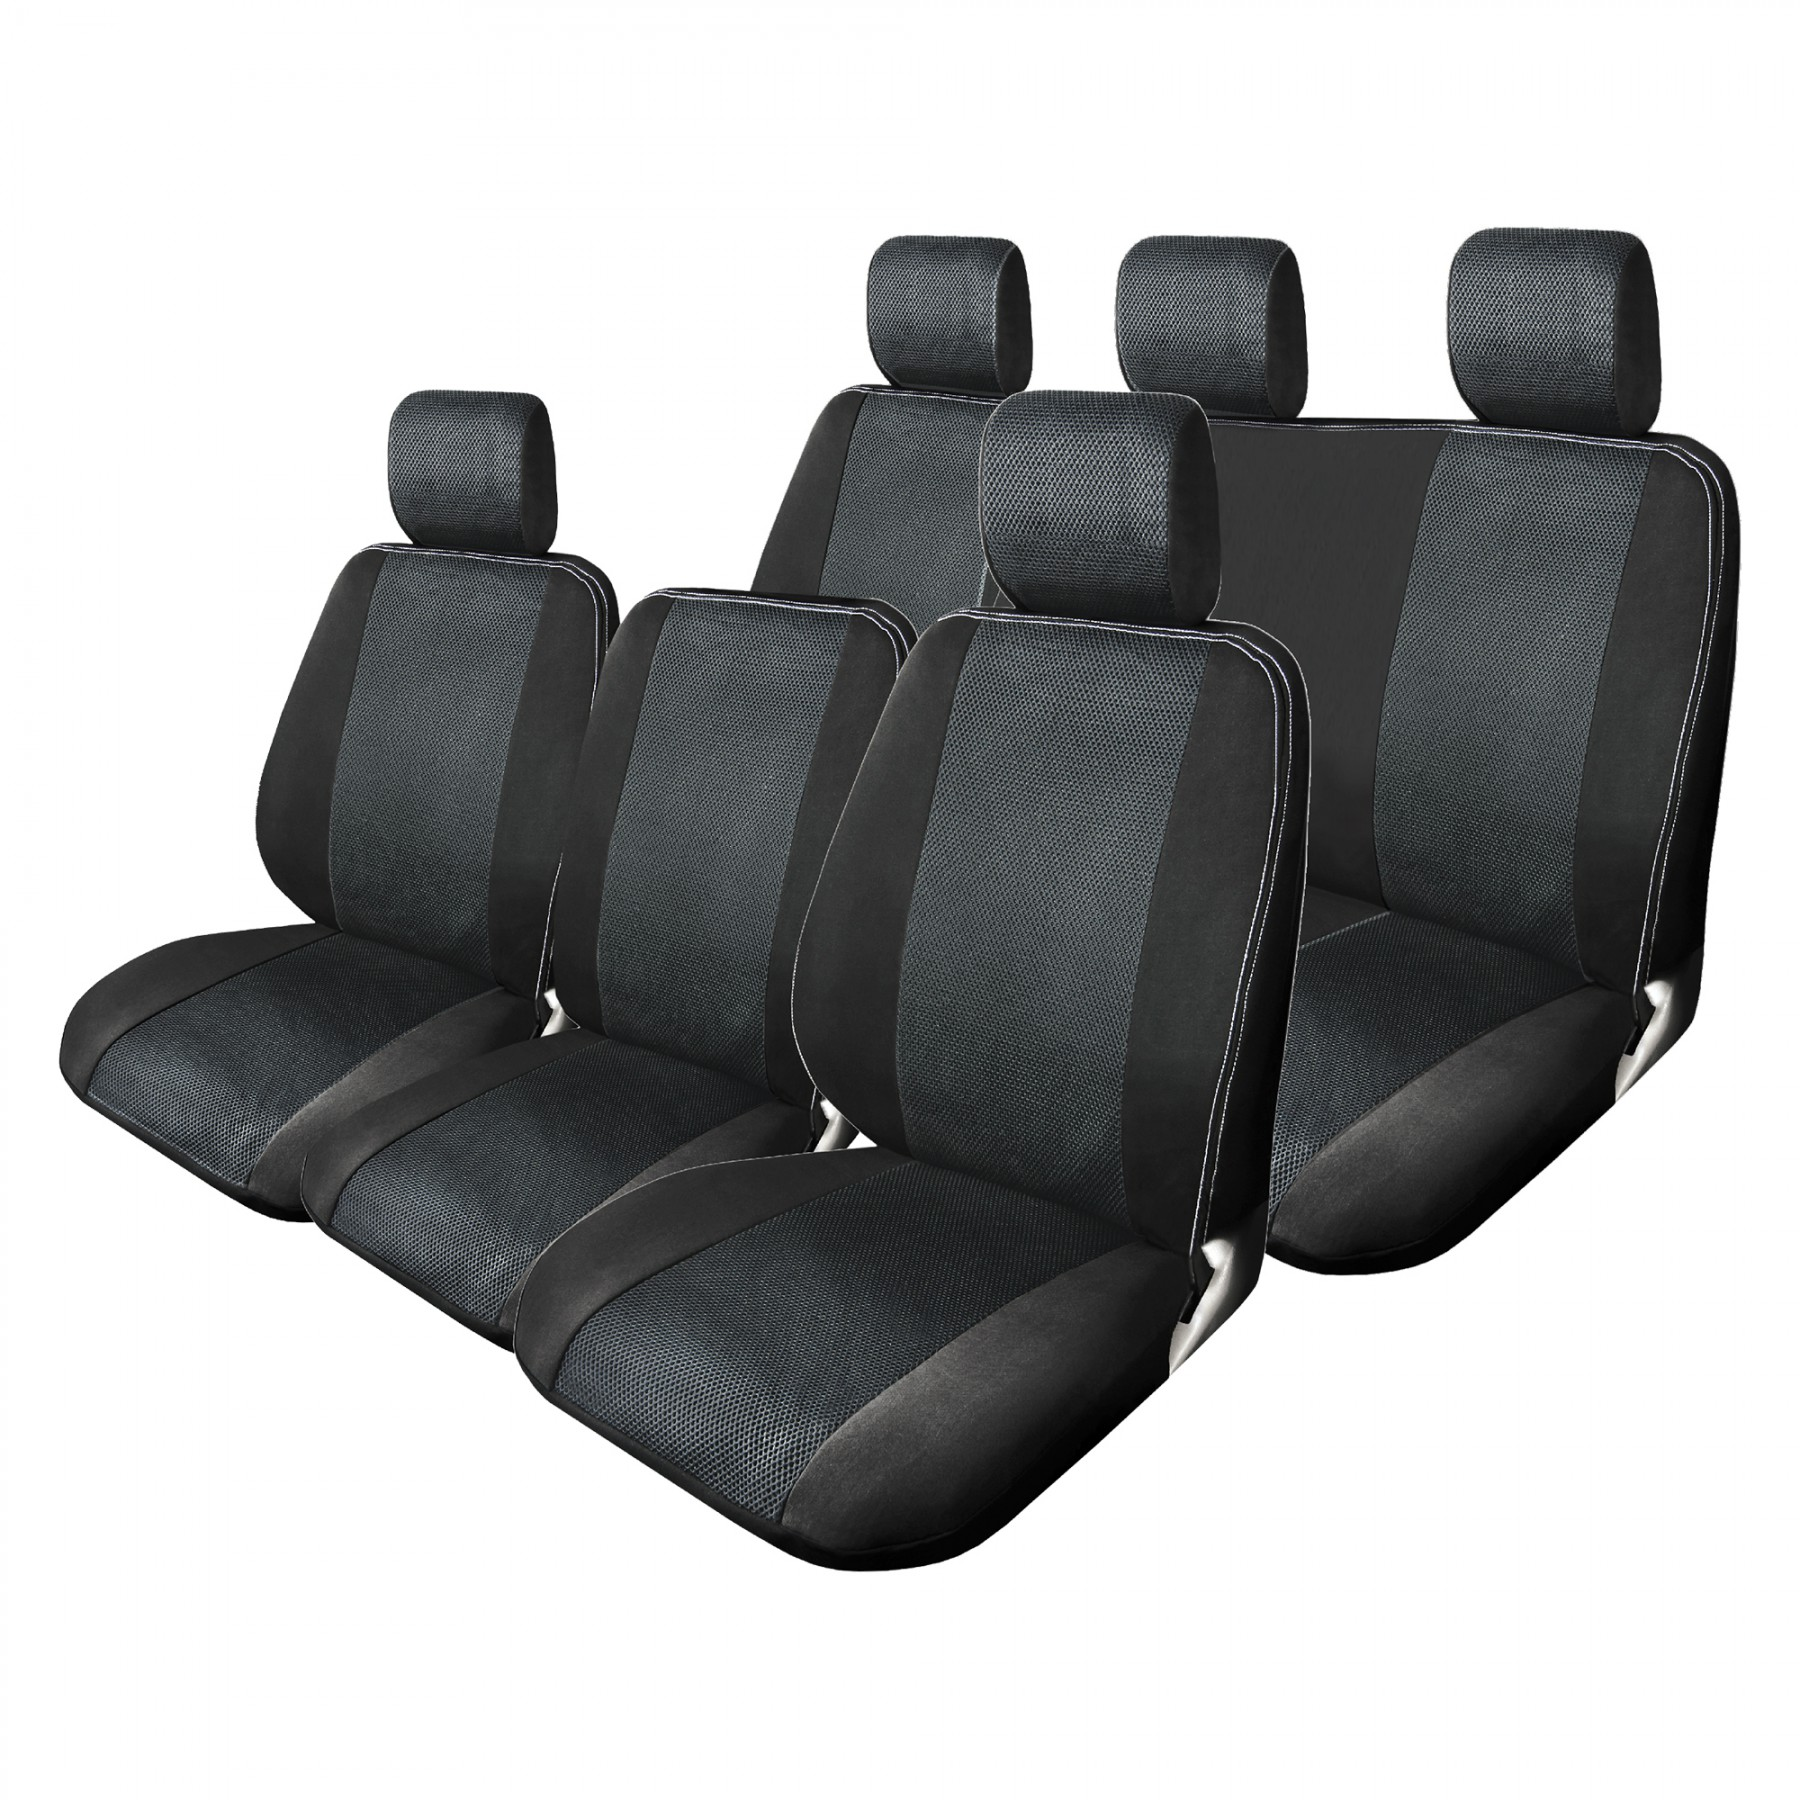 black mesh full set truck seat cover auto seat covers masque. Black Bedroom Furniture Sets. Home Design Ideas